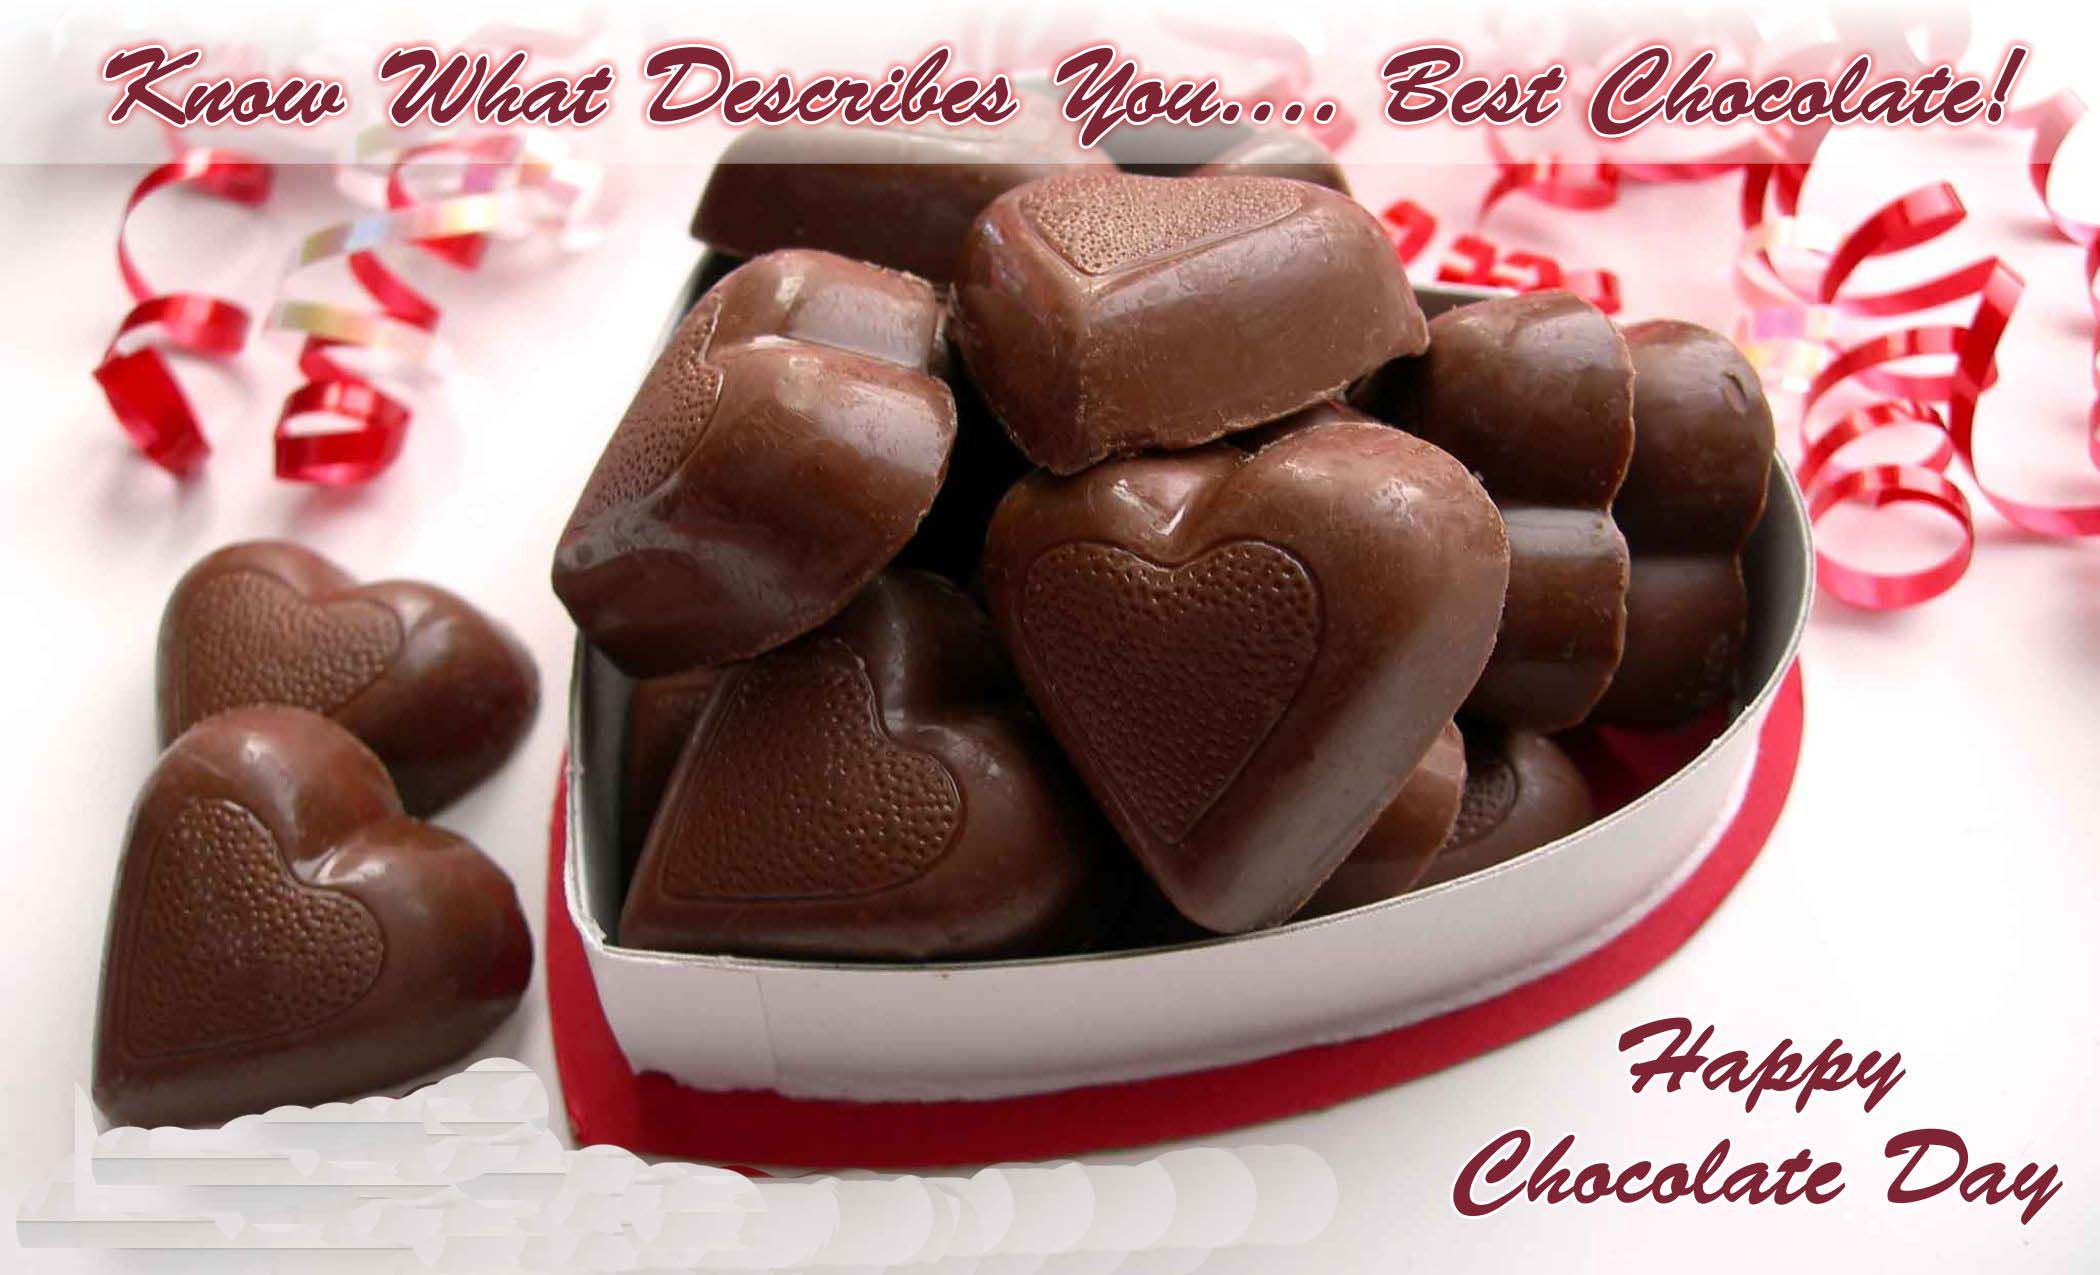 Chocolate day hd wallpaper